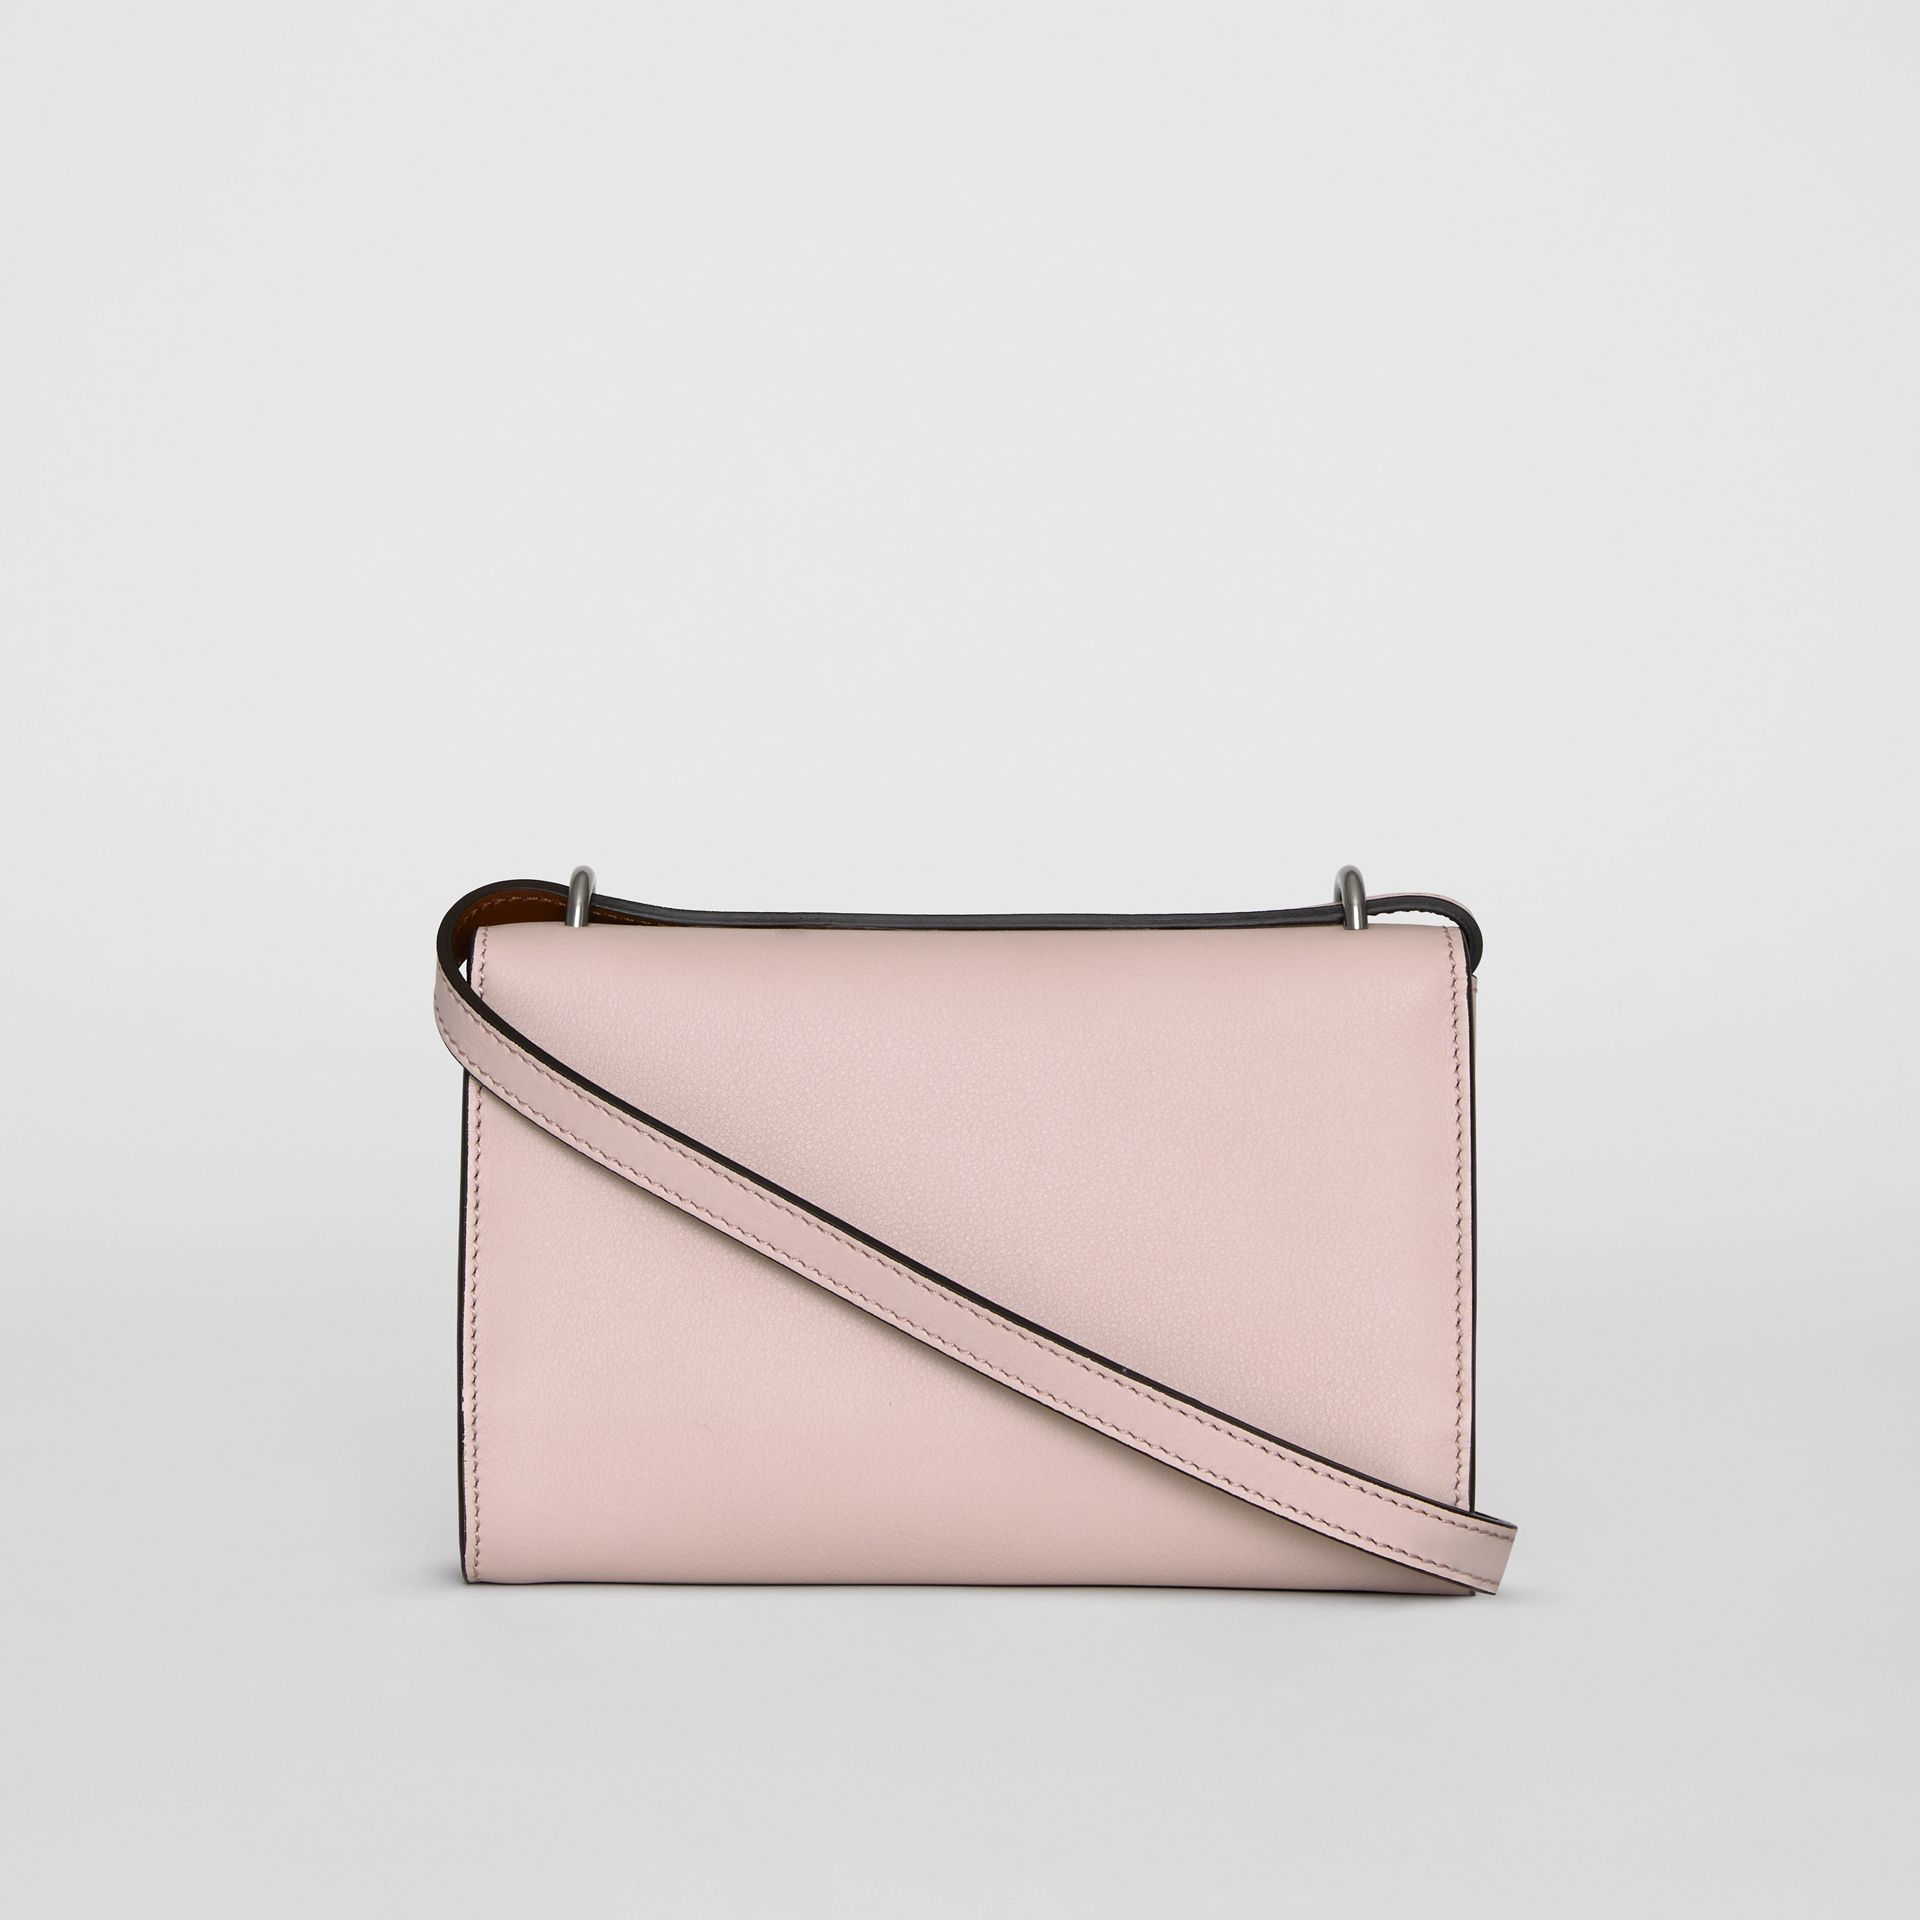 Embossed Crest Leather Wallet with Detachable Strap in Chalk Pink - Women | Burberry United Kingdom - gallery image 7